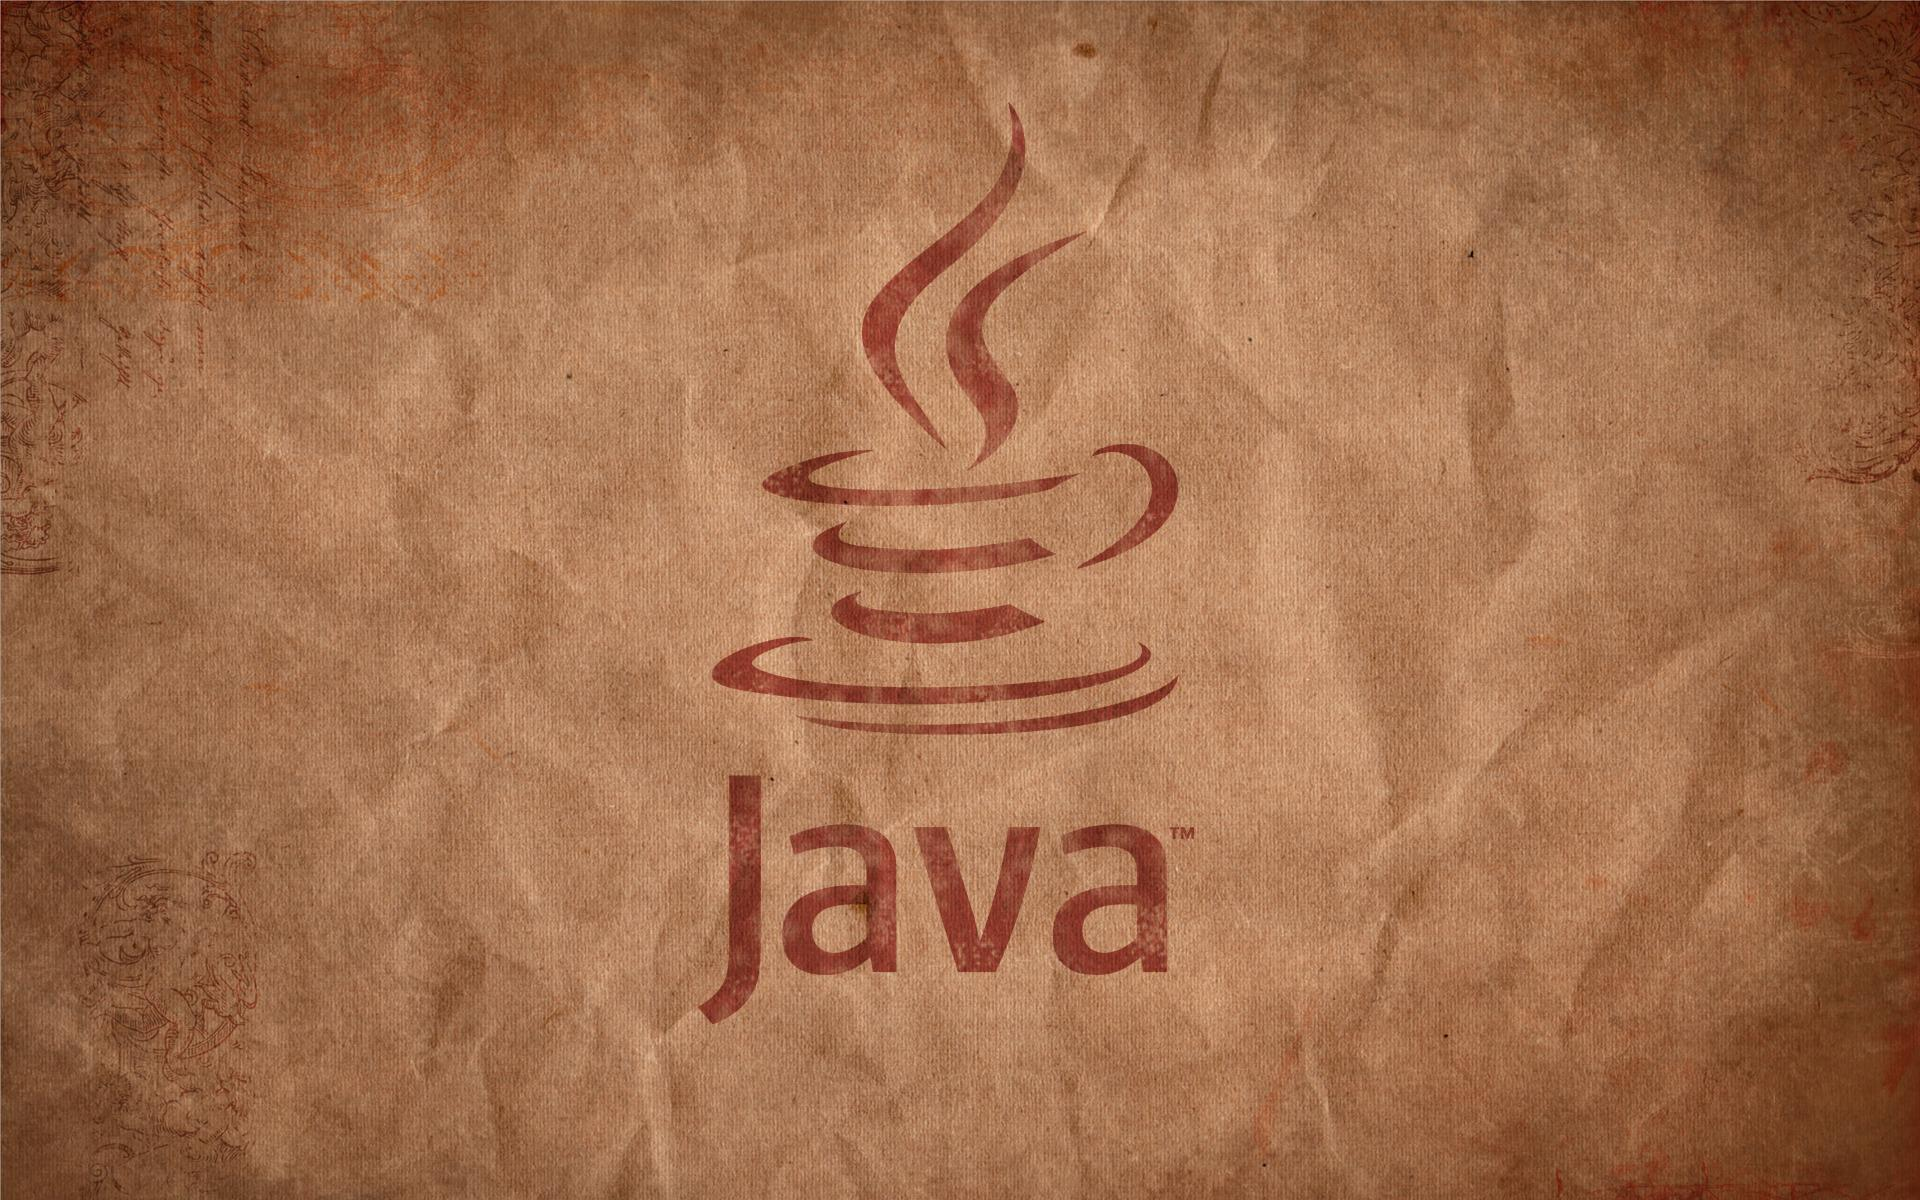 Програмиране с Java (Основно ниво)